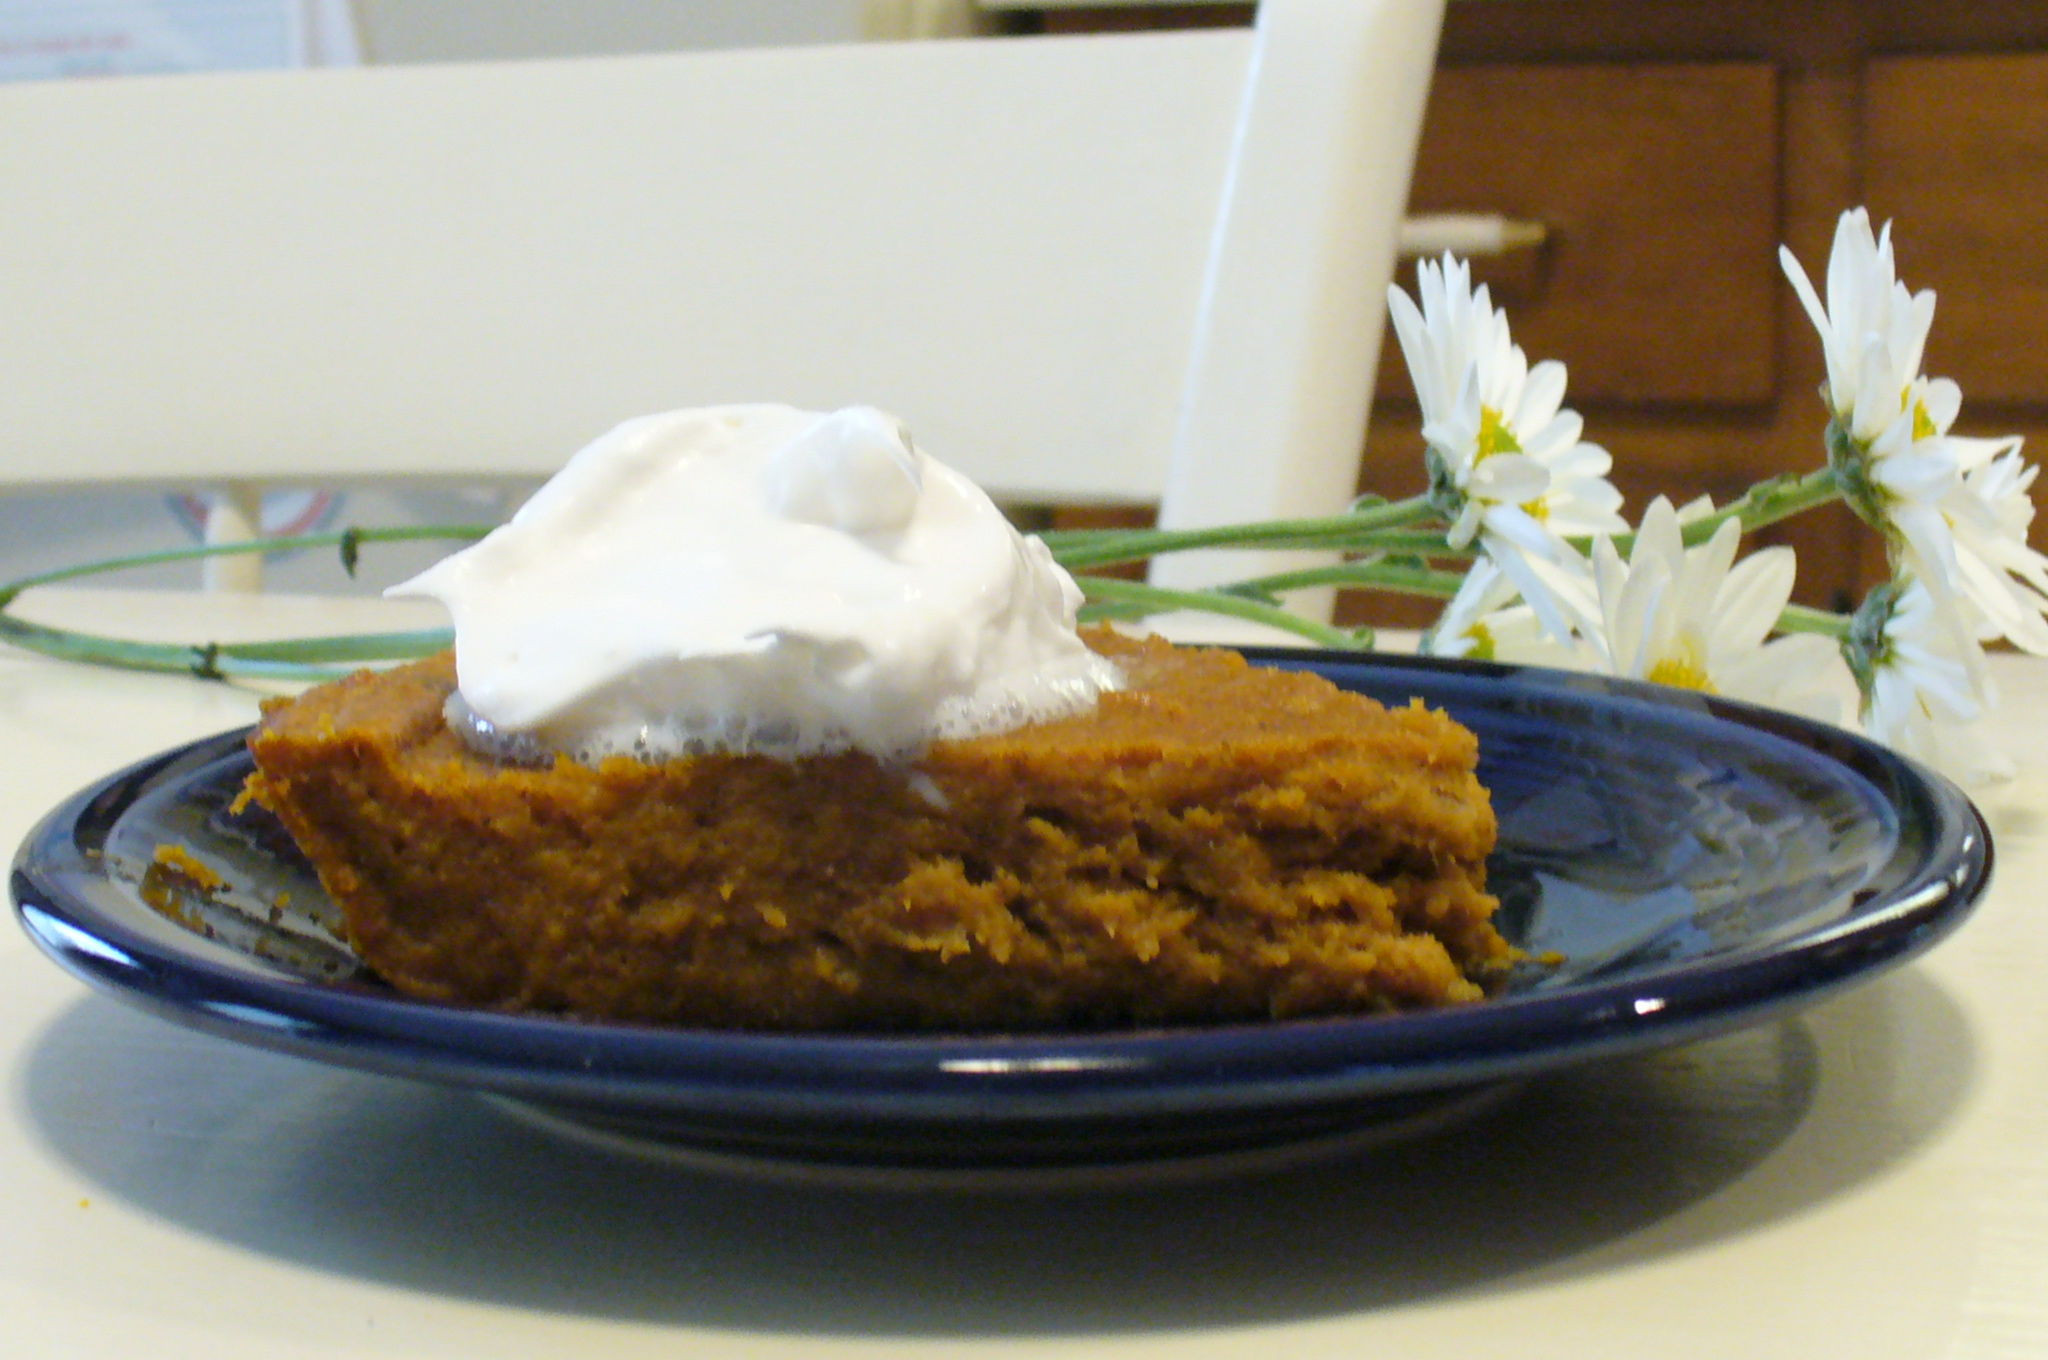 Low Fat Pumpkin Pie Recipe  Low fat pumpkin pie recipe All recipes UK